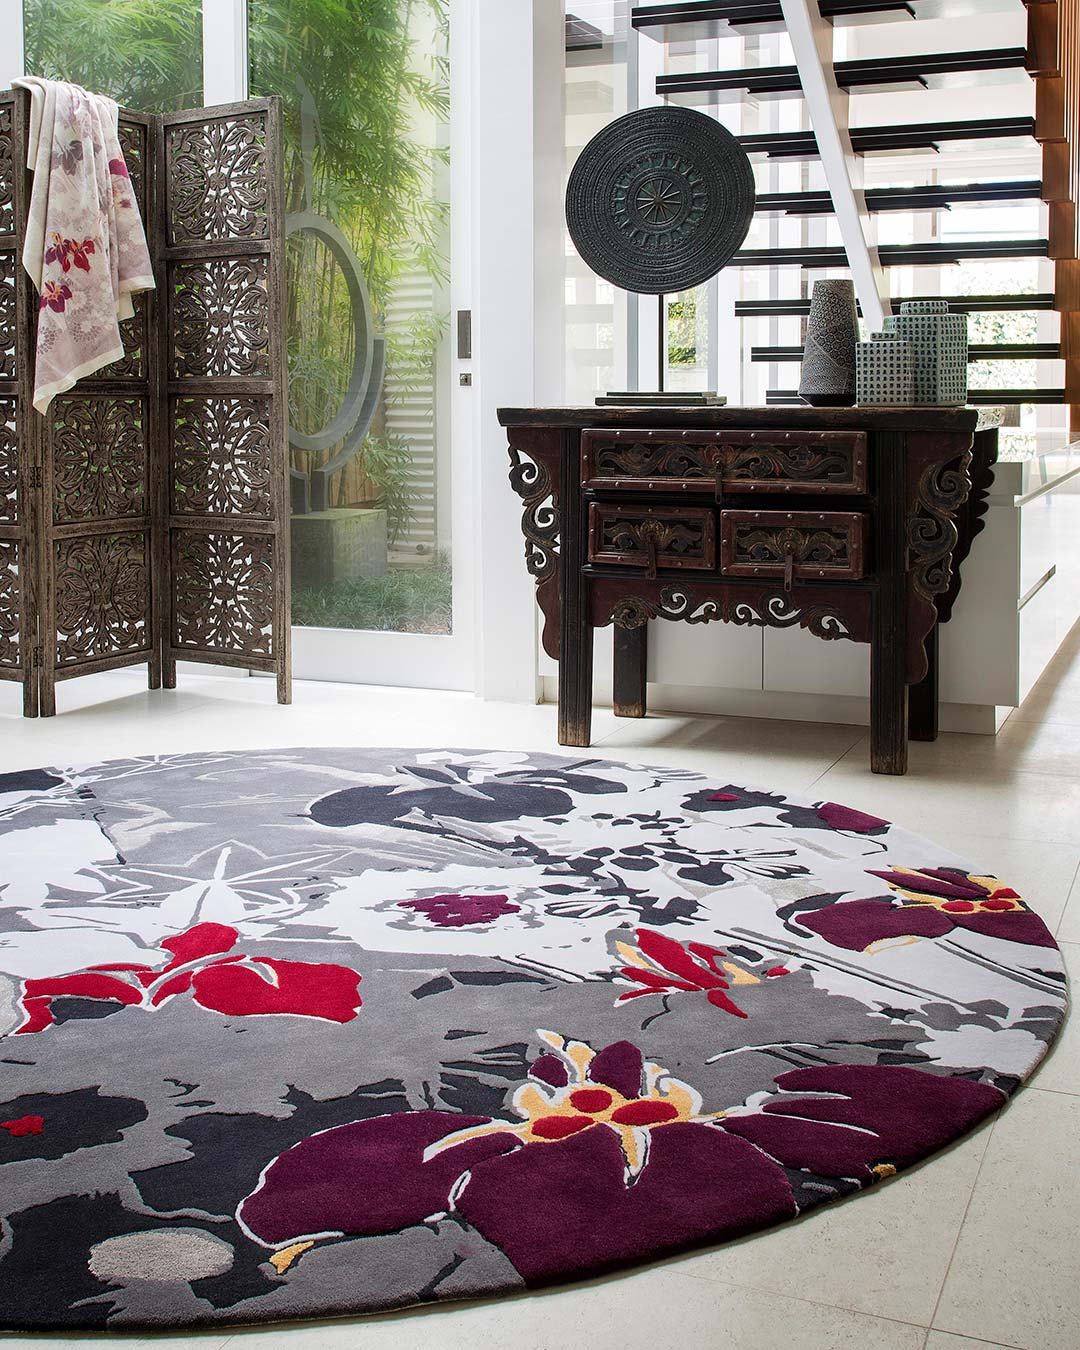 location bedroom shot of ayame round rug by akira floral pattern in grey purple and red